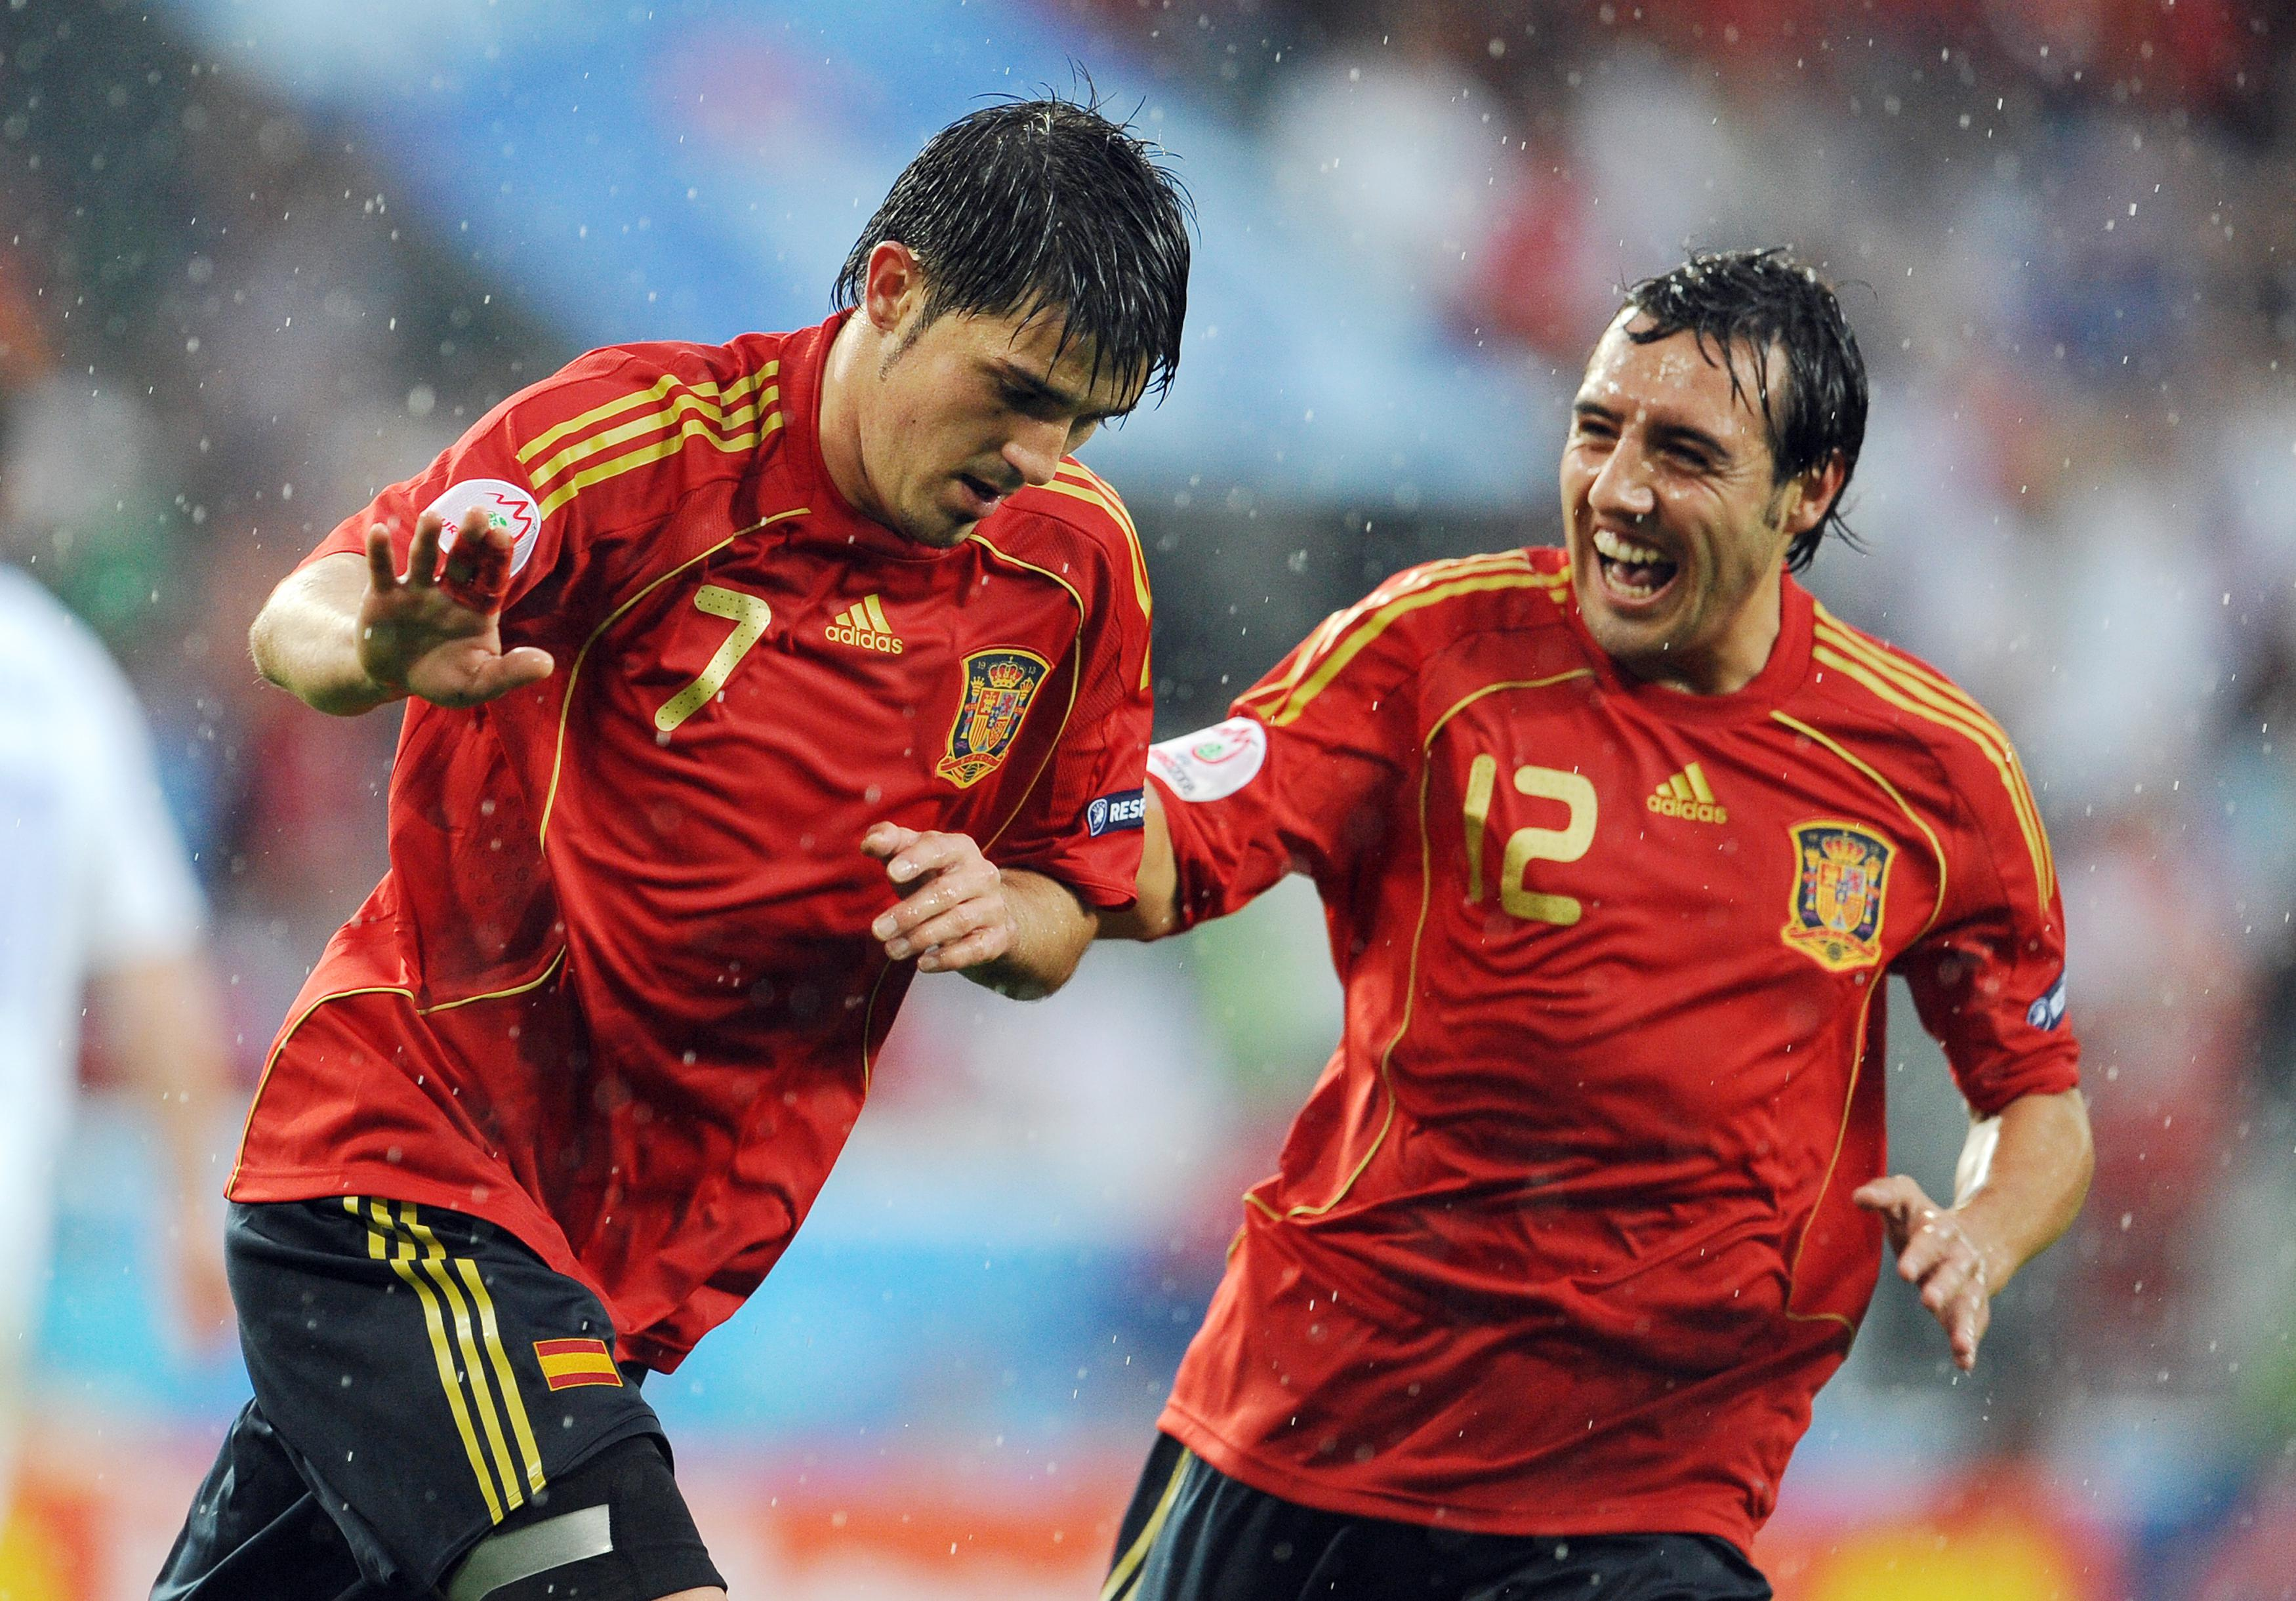 Cazorla has received almost daily encouragement from his teammates, including David Villa